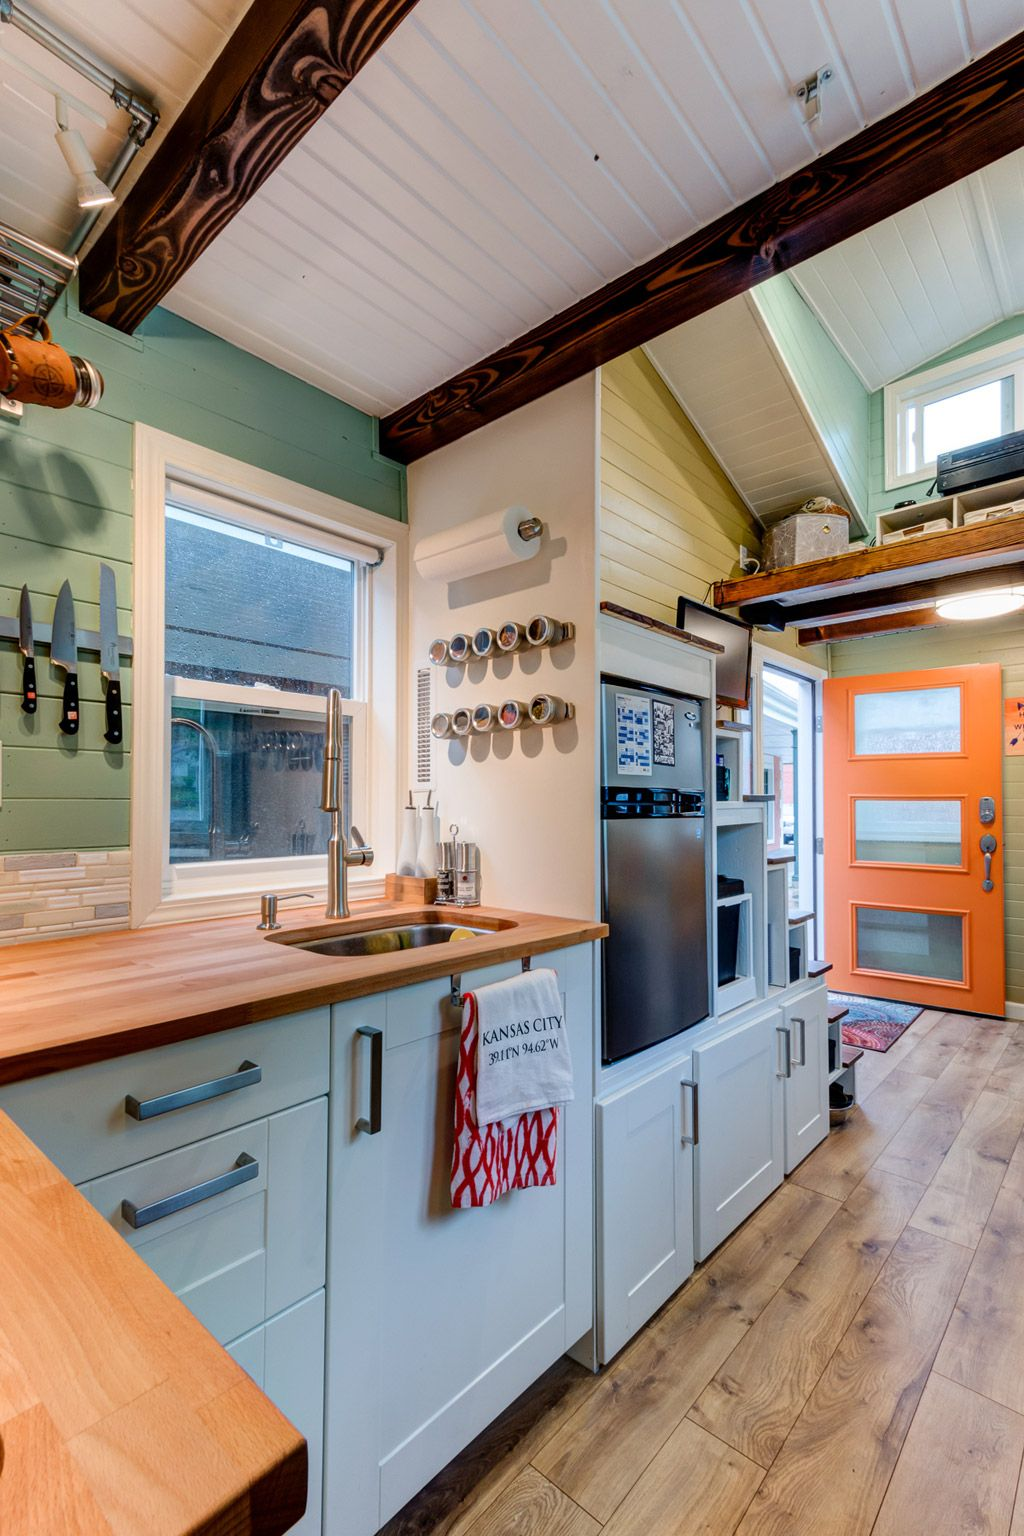 The Wanderlust is a tiny house on